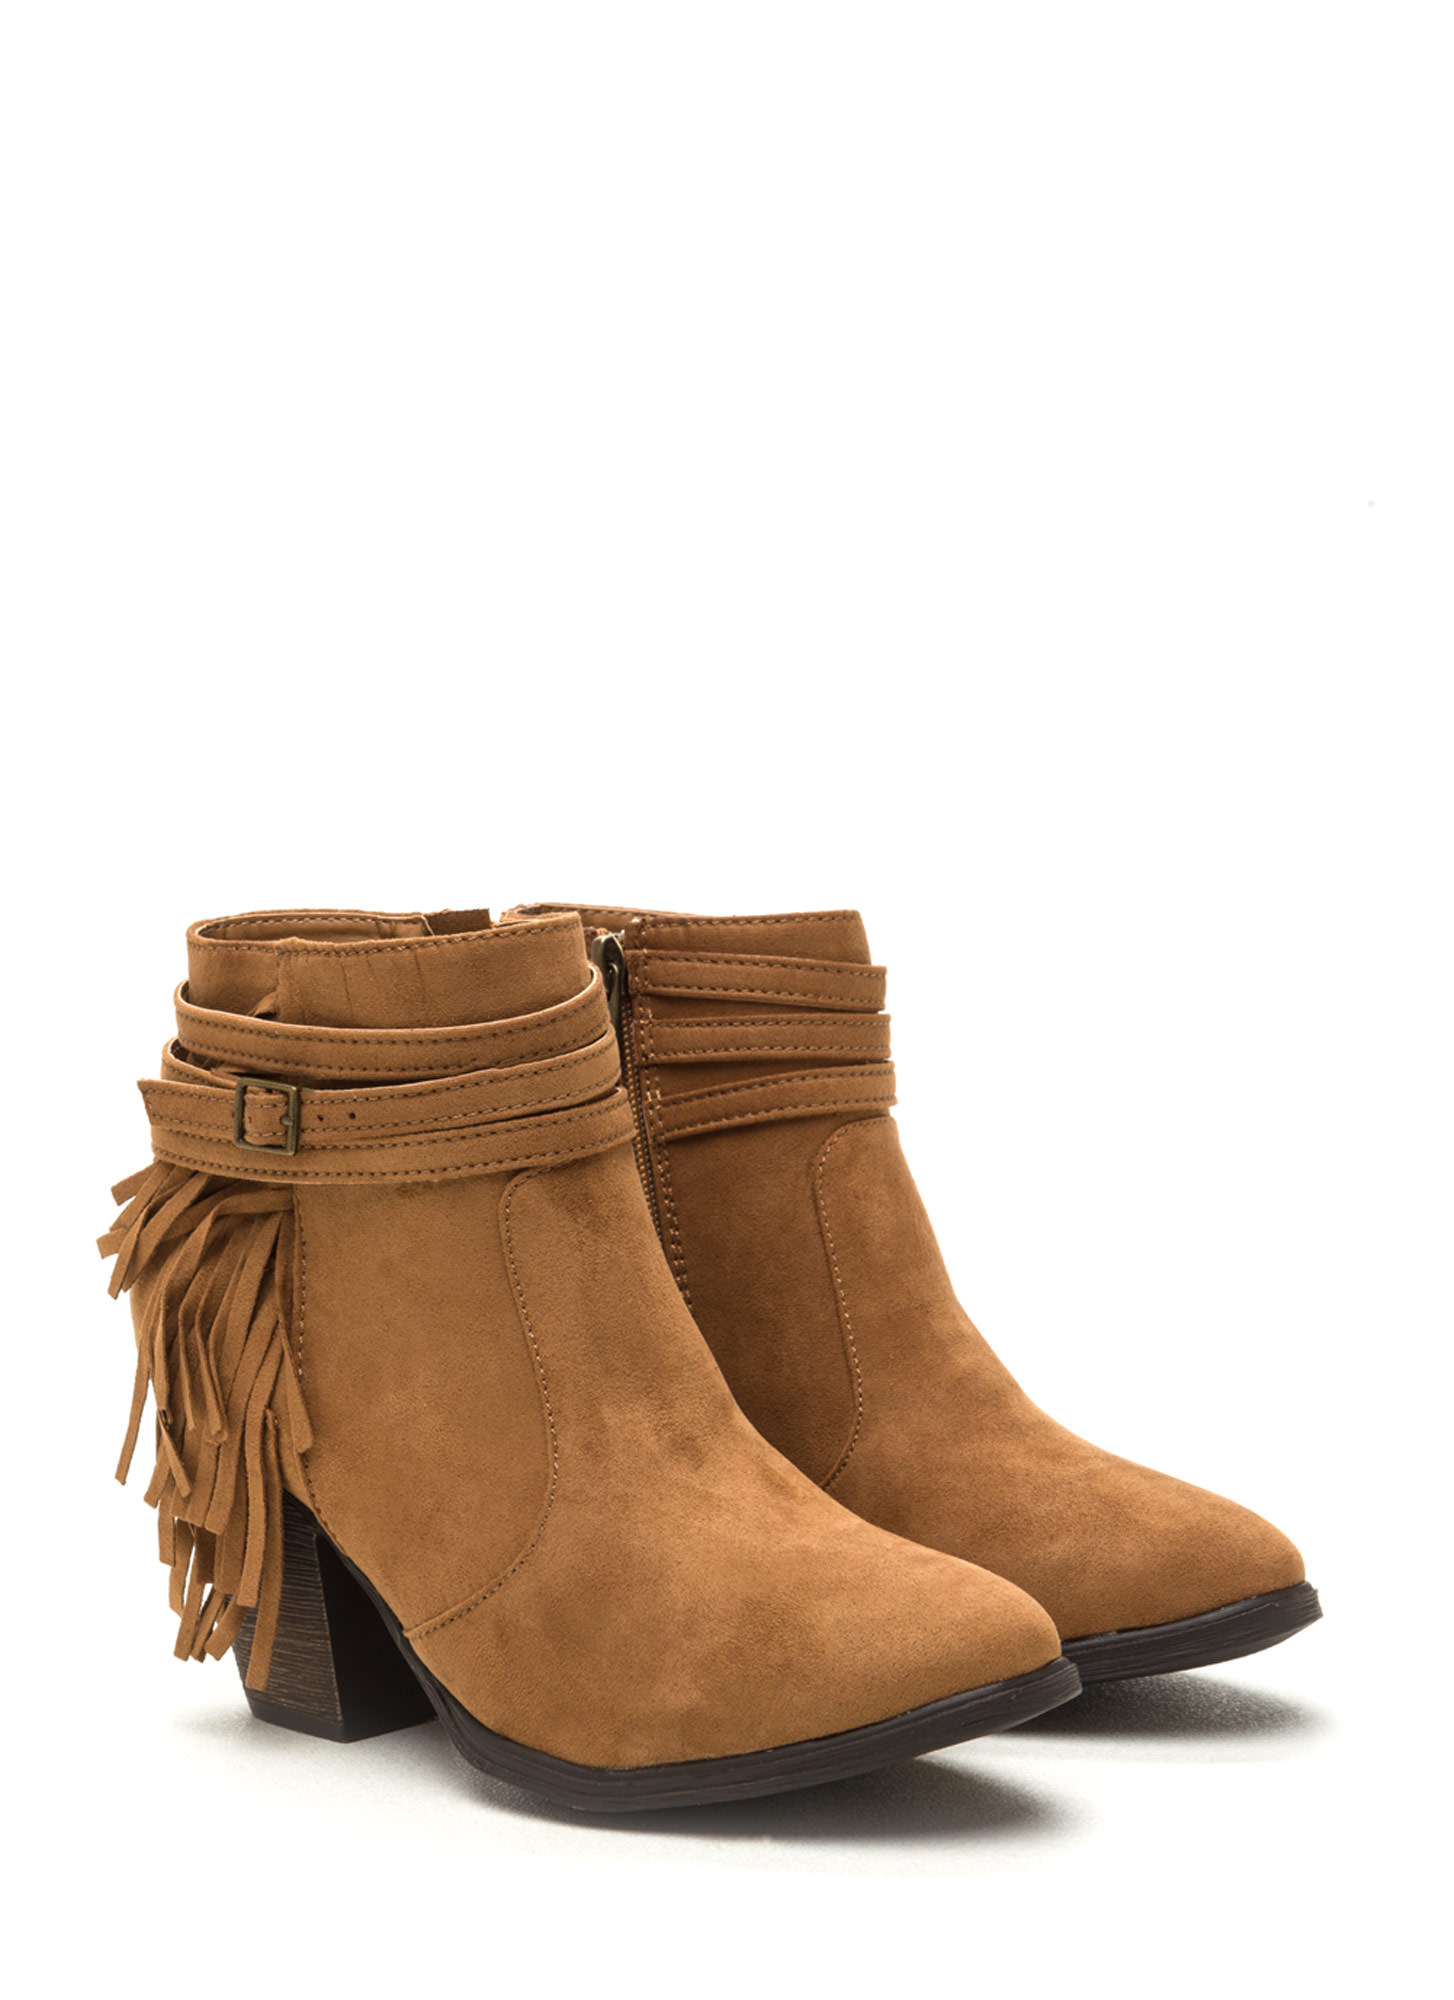 Fringe Benefit Faux Suede Booties NATURAL